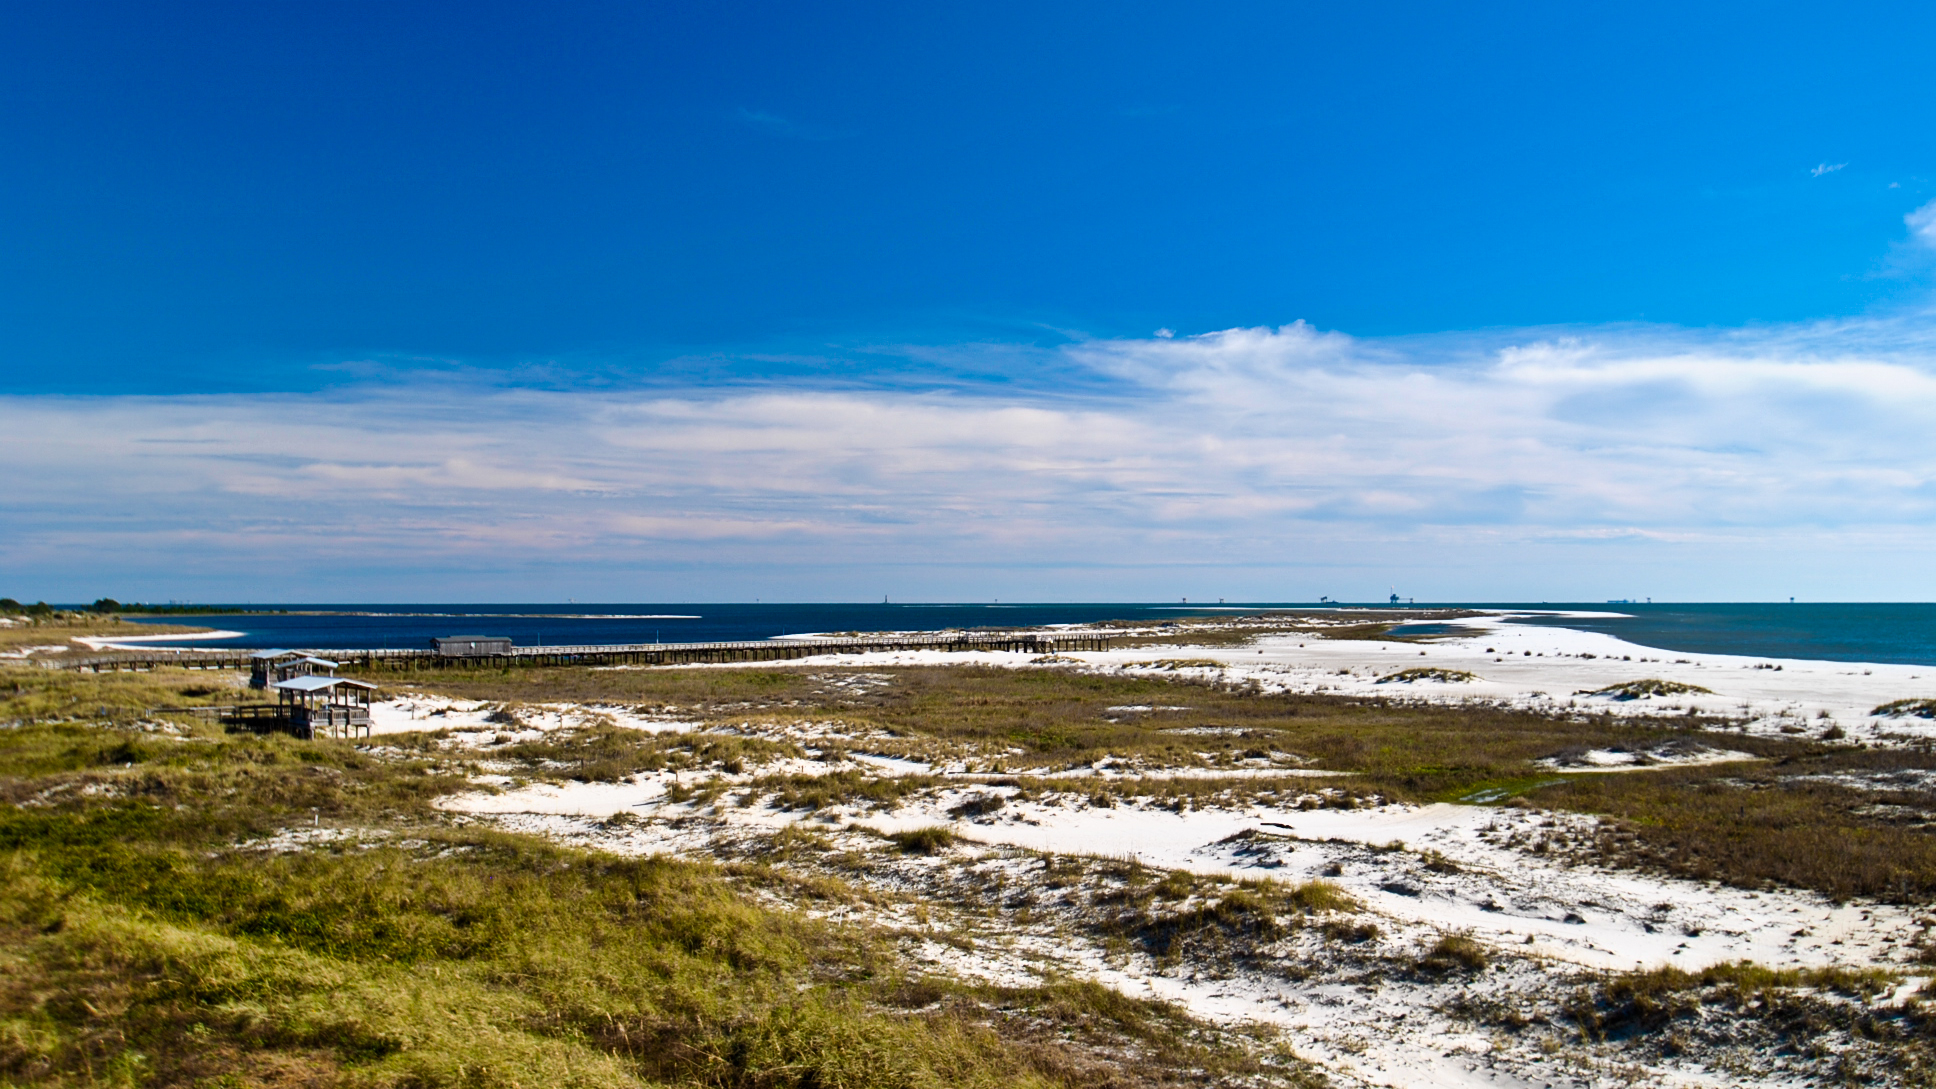 The Gulf of Mexico Beach, near the Holiday Isles Resort on Dauphin Island, Alabama taken in December 2015